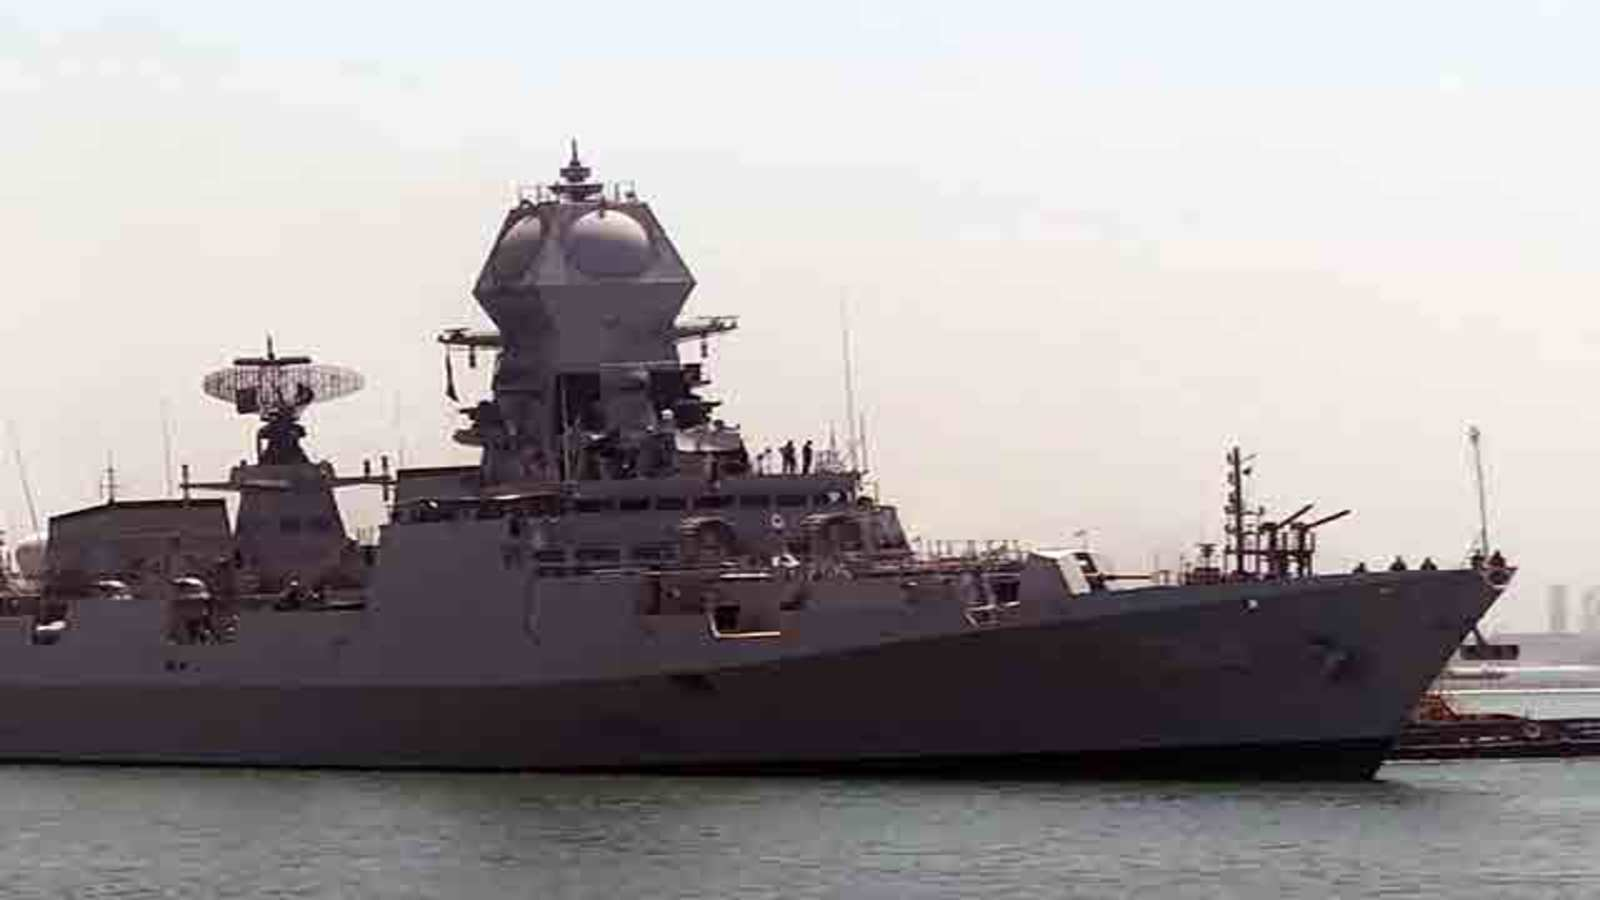 Cyclone Tauktae: Indian Navy Sends Ships To Rescue Two Barges With 410 Persons On Board